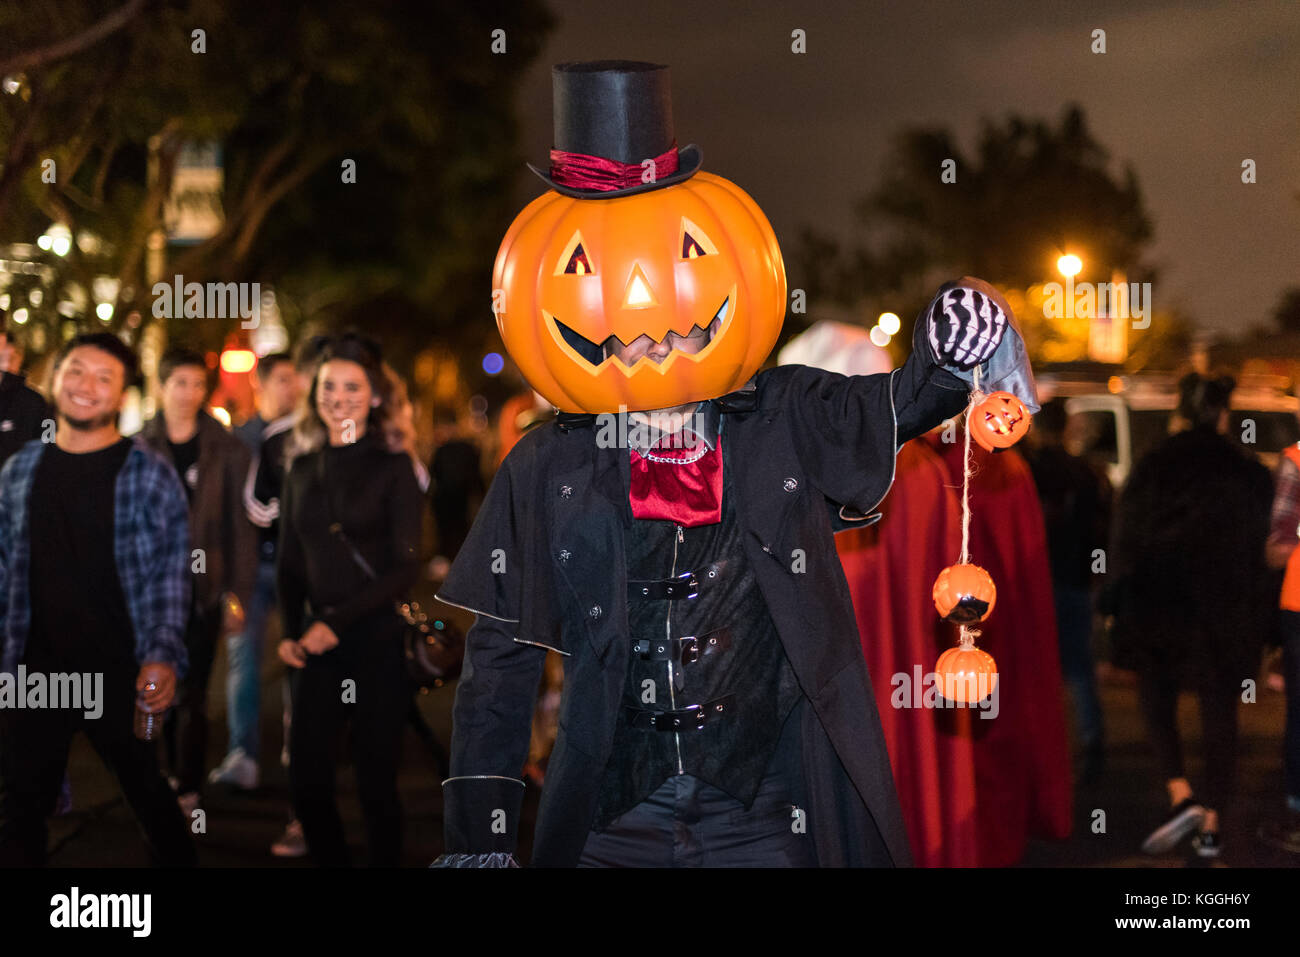 los angeles - october 31: halloween parade in west hollywood